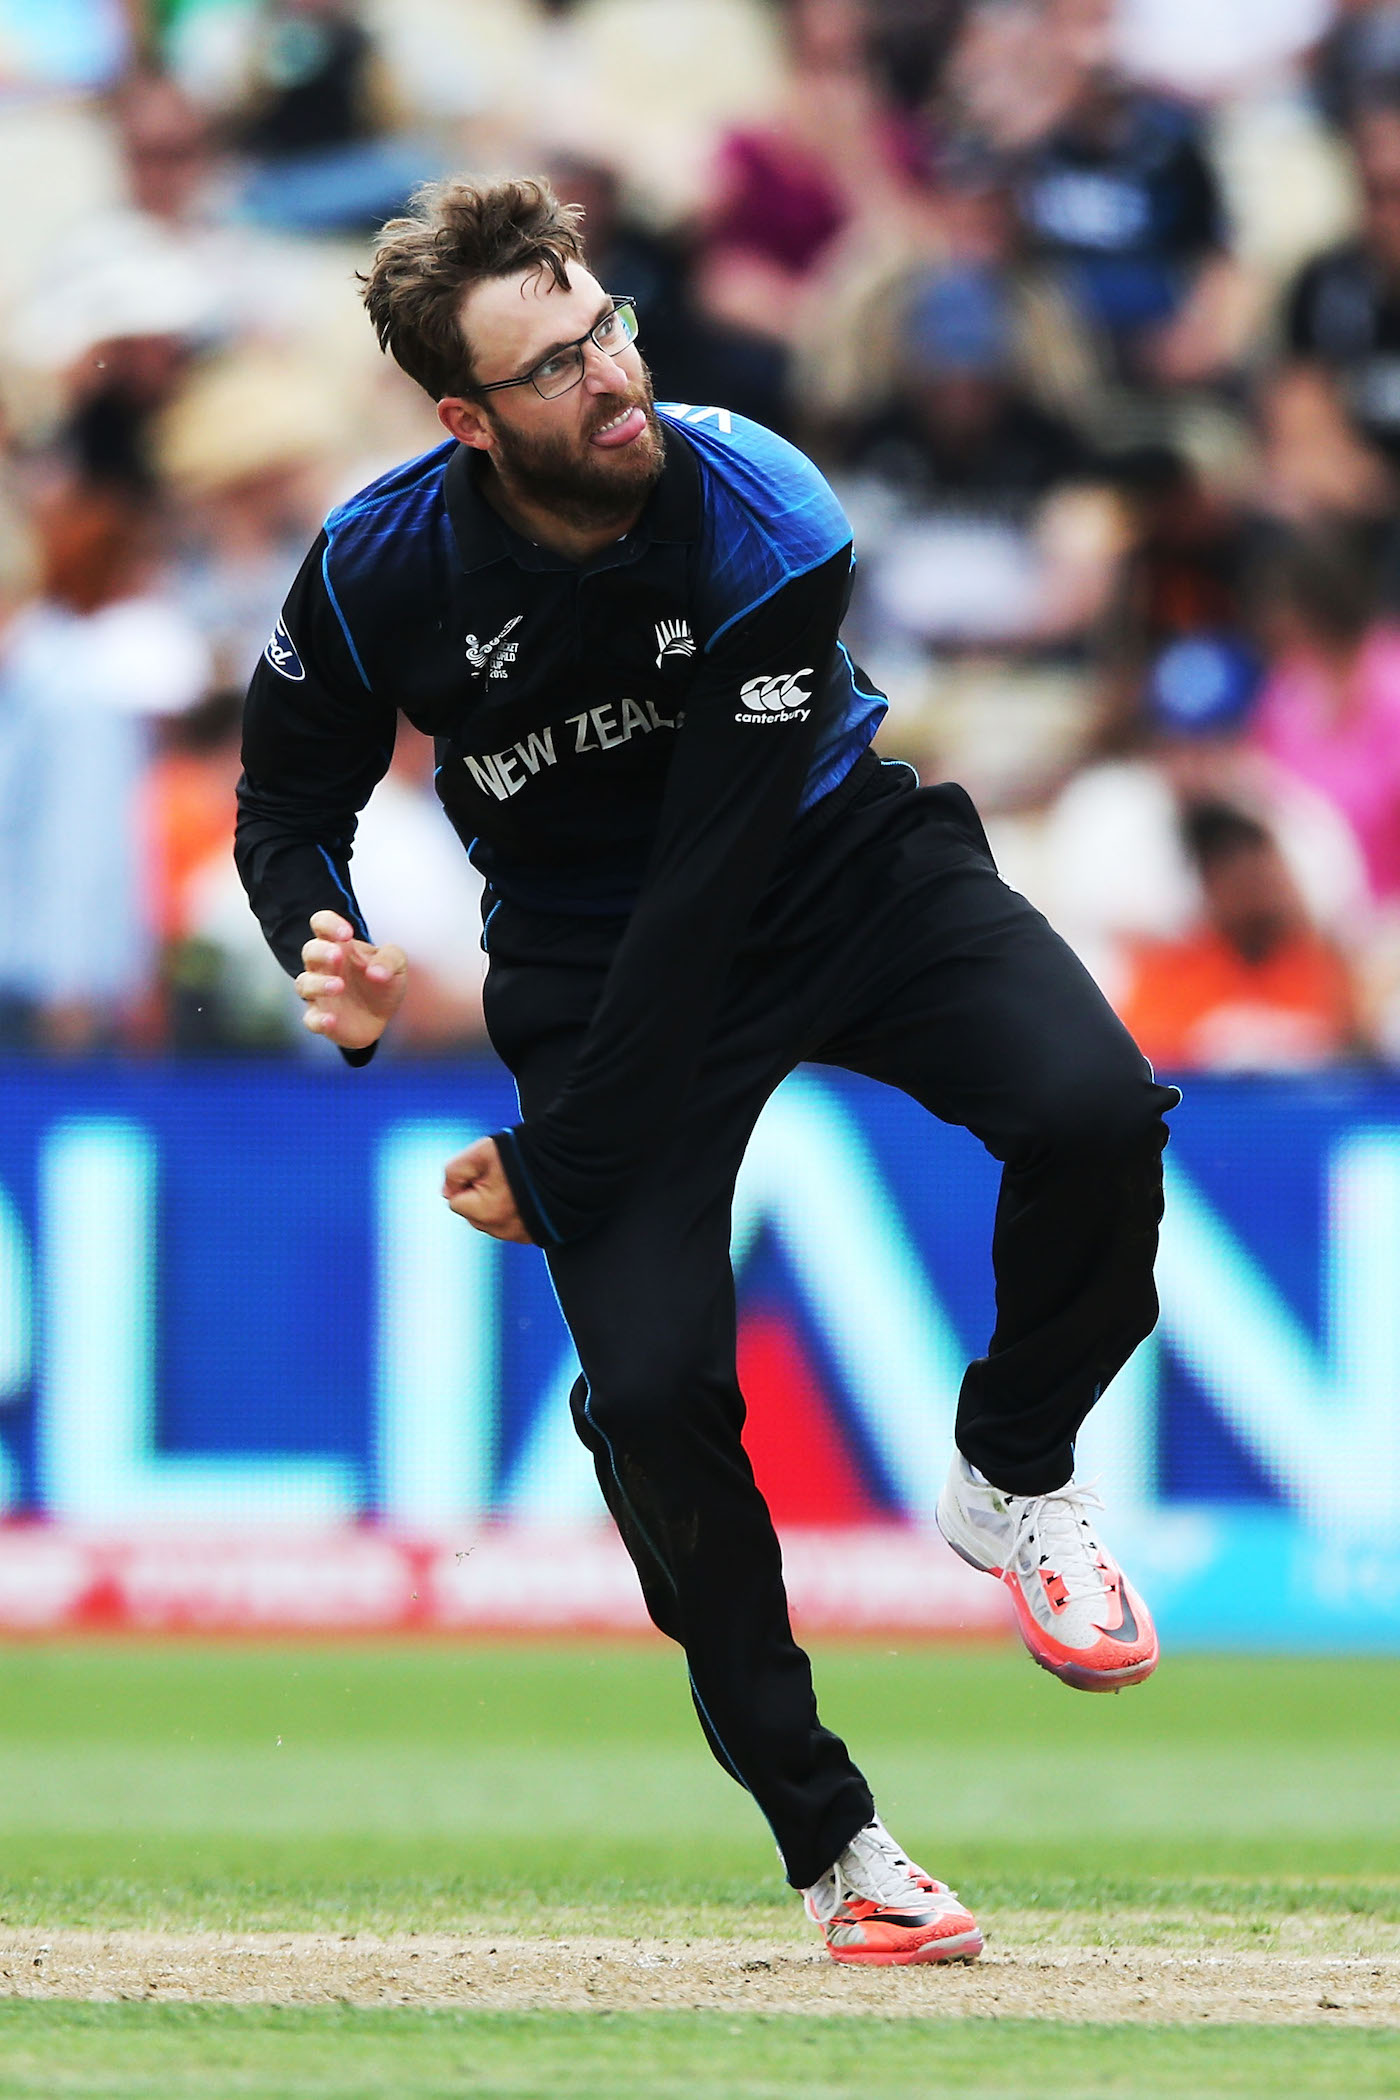 Face of deception: Vettori's mastery of drift and variation gets him a spot in the bowling lineup